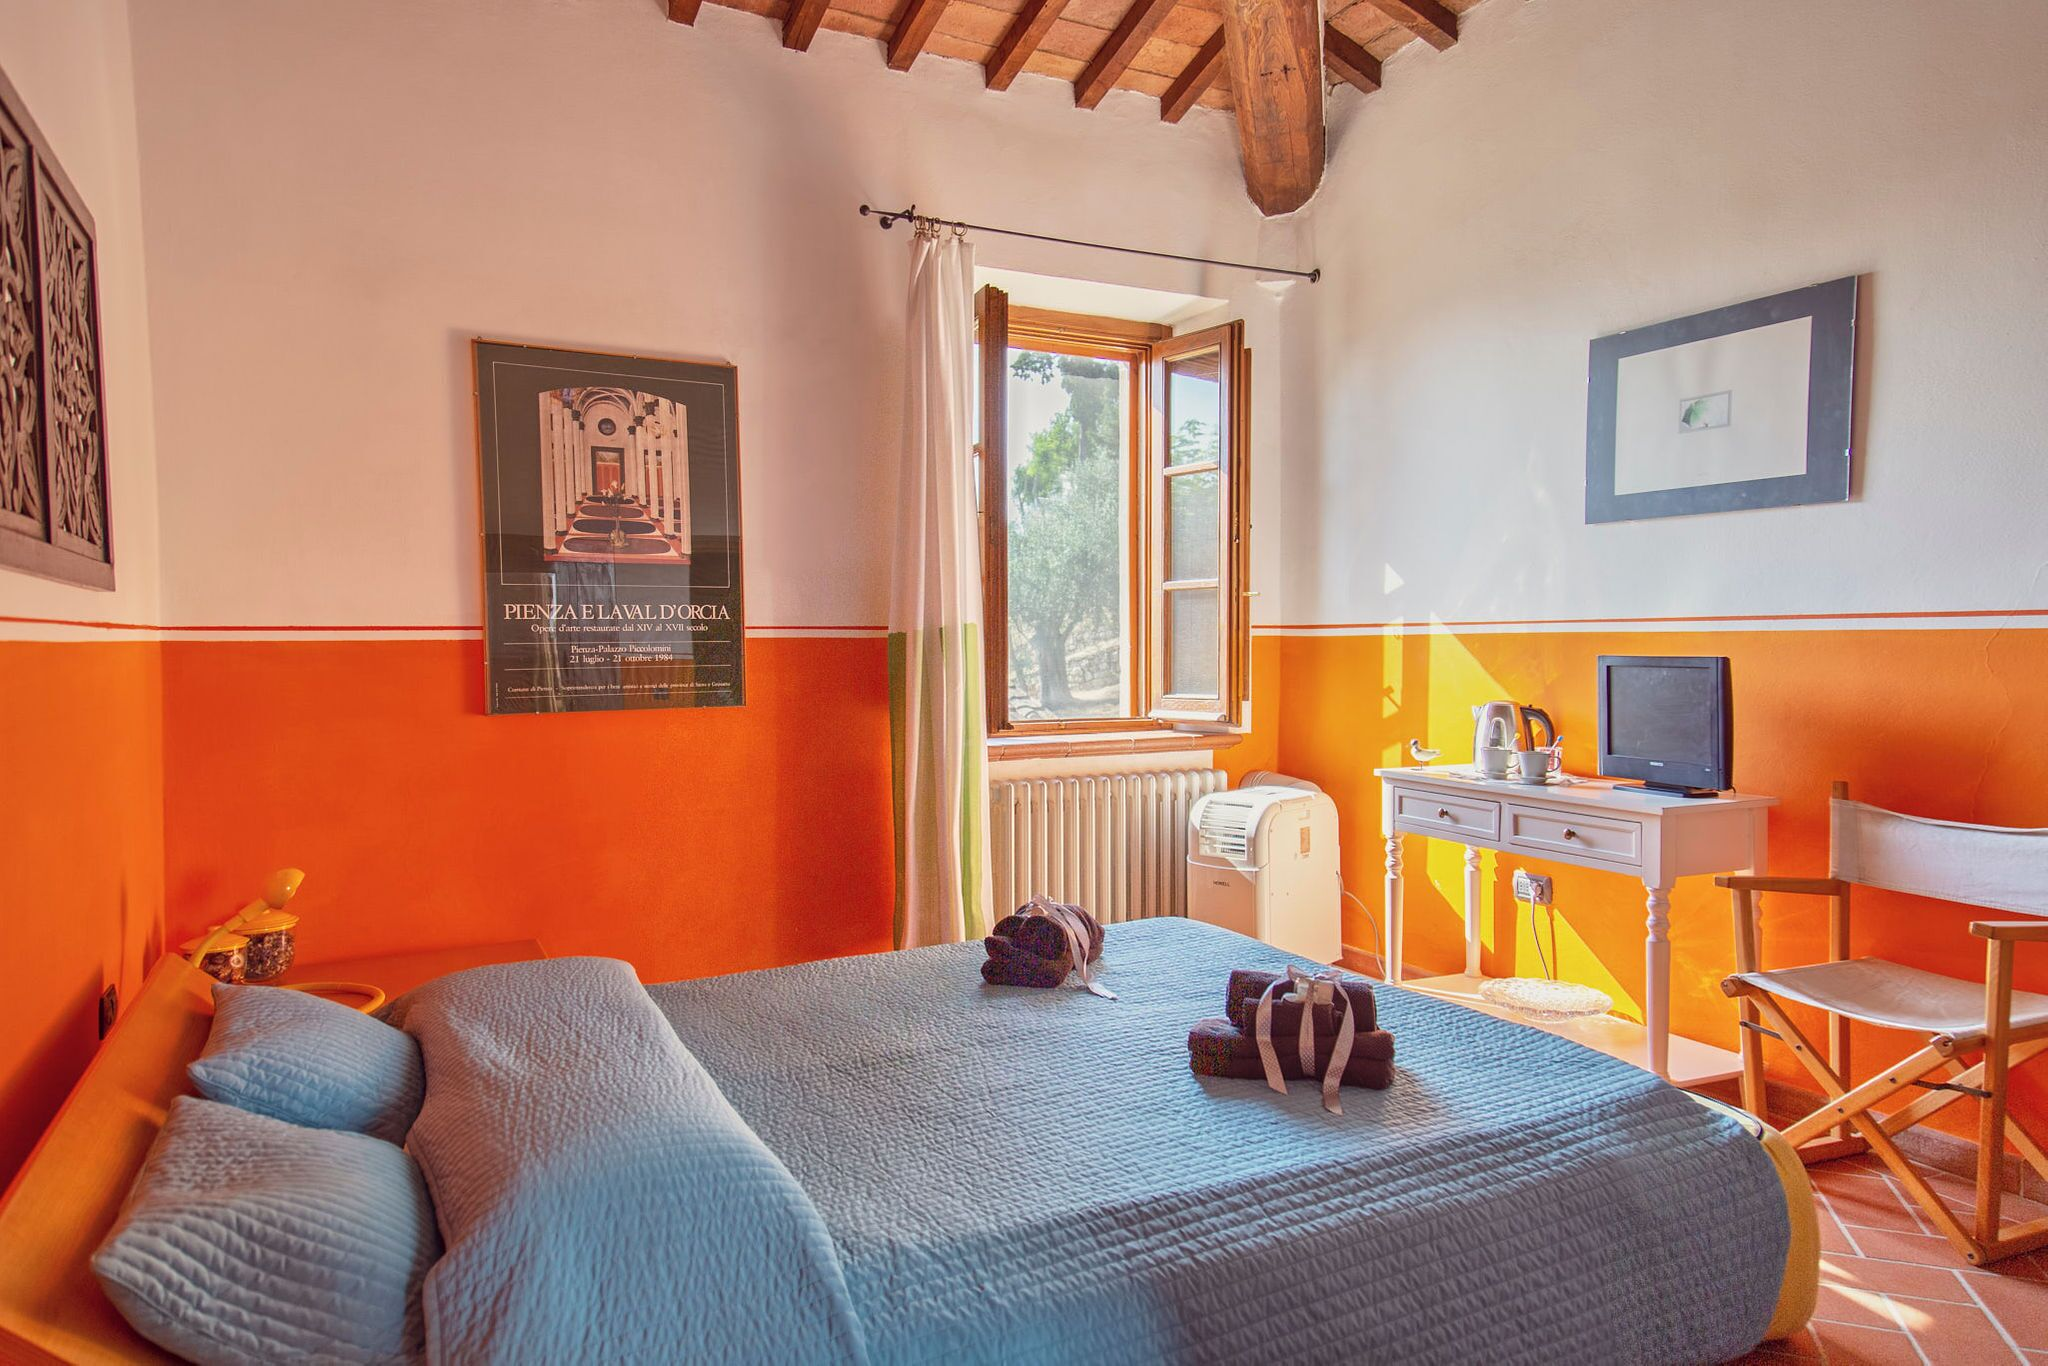 Luxury B&B In Monticchiello In Tuscany With Fantastic Views of the Val D'orcia